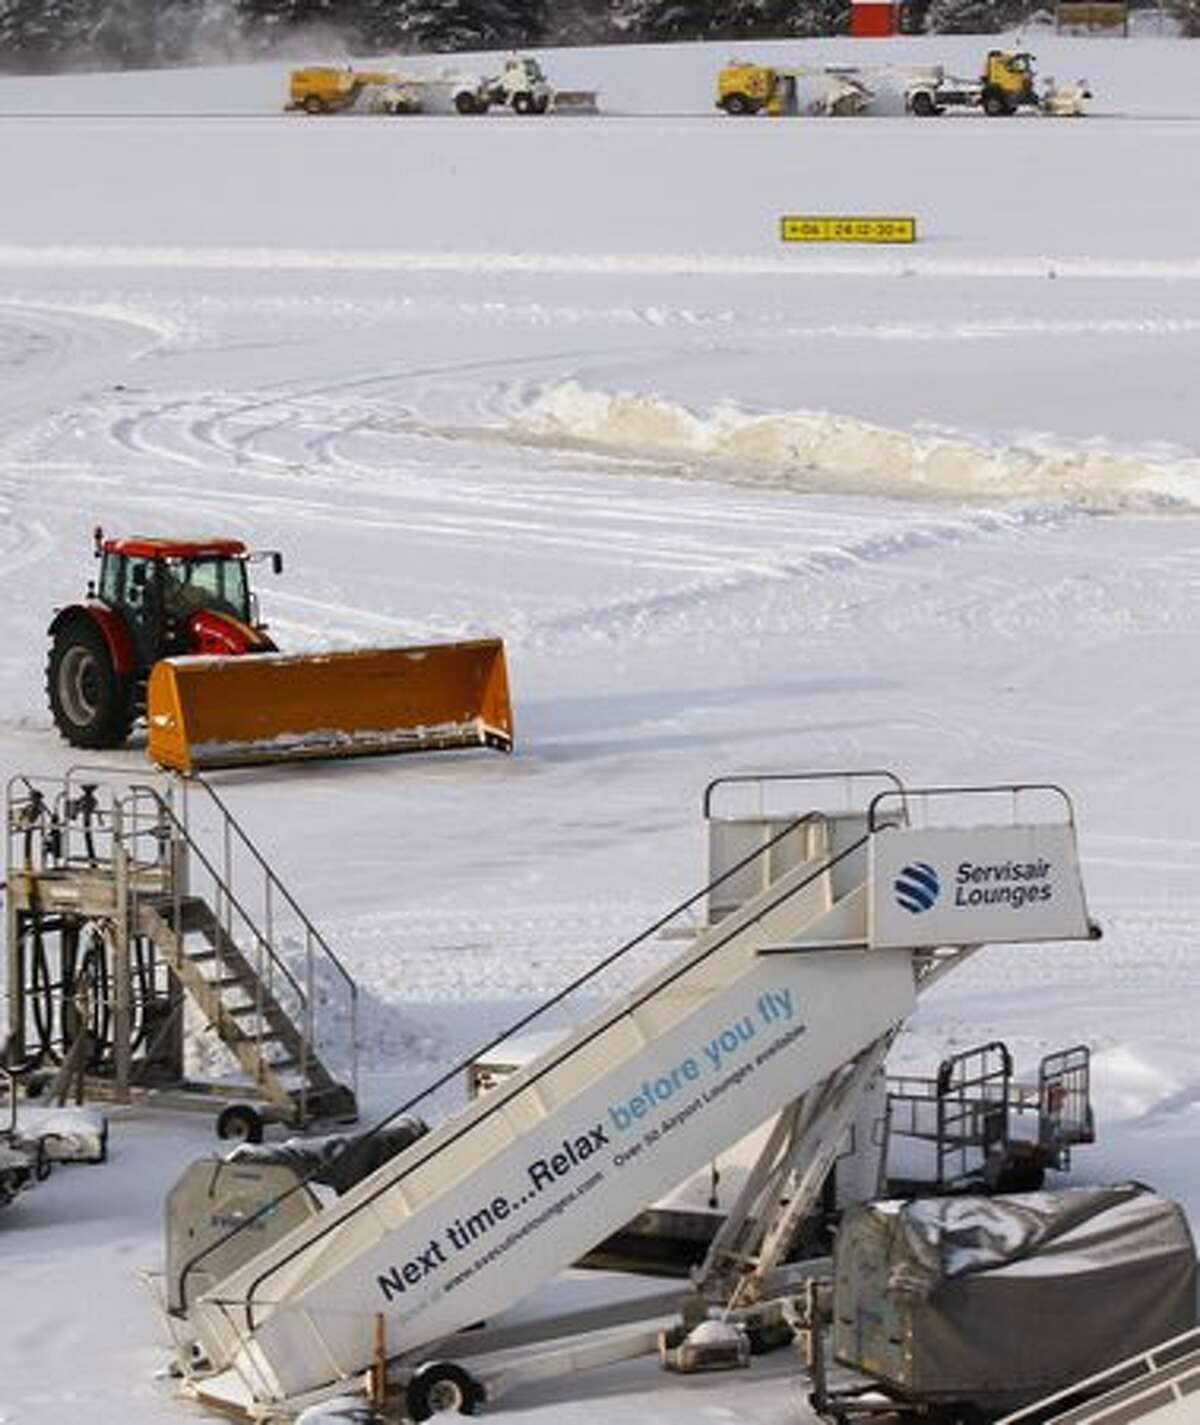 Crews attempt to clear snow from one of the runways at Edinburgh Airport, in Edinburgh, Scotland. Freezing weather conditions and heavy snow have forced Scotland's main airport to close for the day.